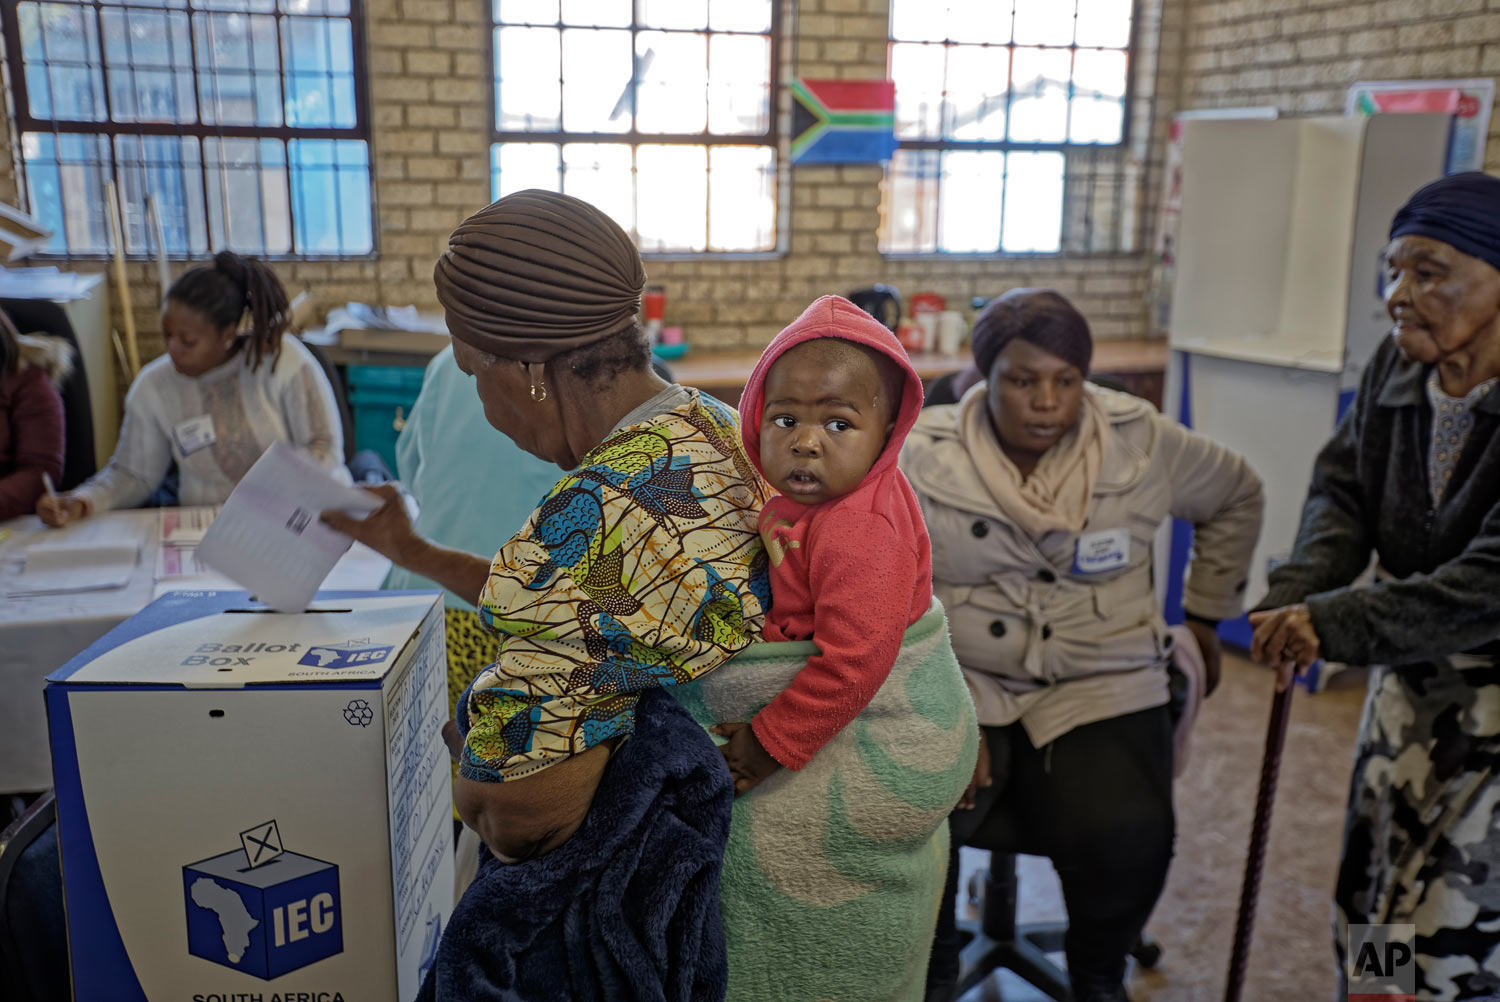 South Africans cast their votes at the Hitekani Primary School in Soweto, Johannesburg, South Africa, May 8, 2019. (AP Photo/Ben Curtis)